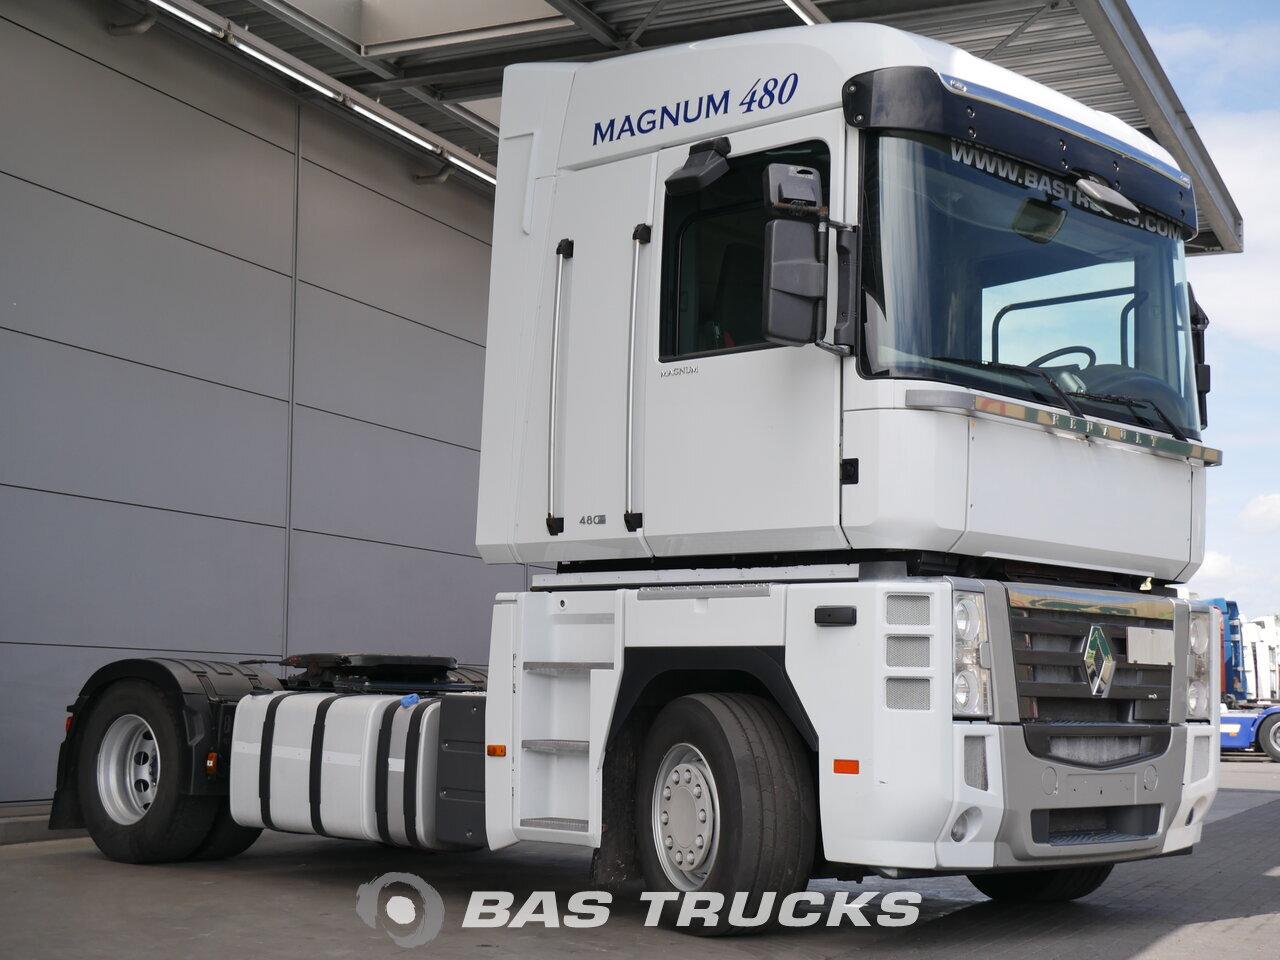 renault magnum 480 tracteur euro 5 16600 bas trucks. Black Bedroom Furniture Sets. Home Design Ideas